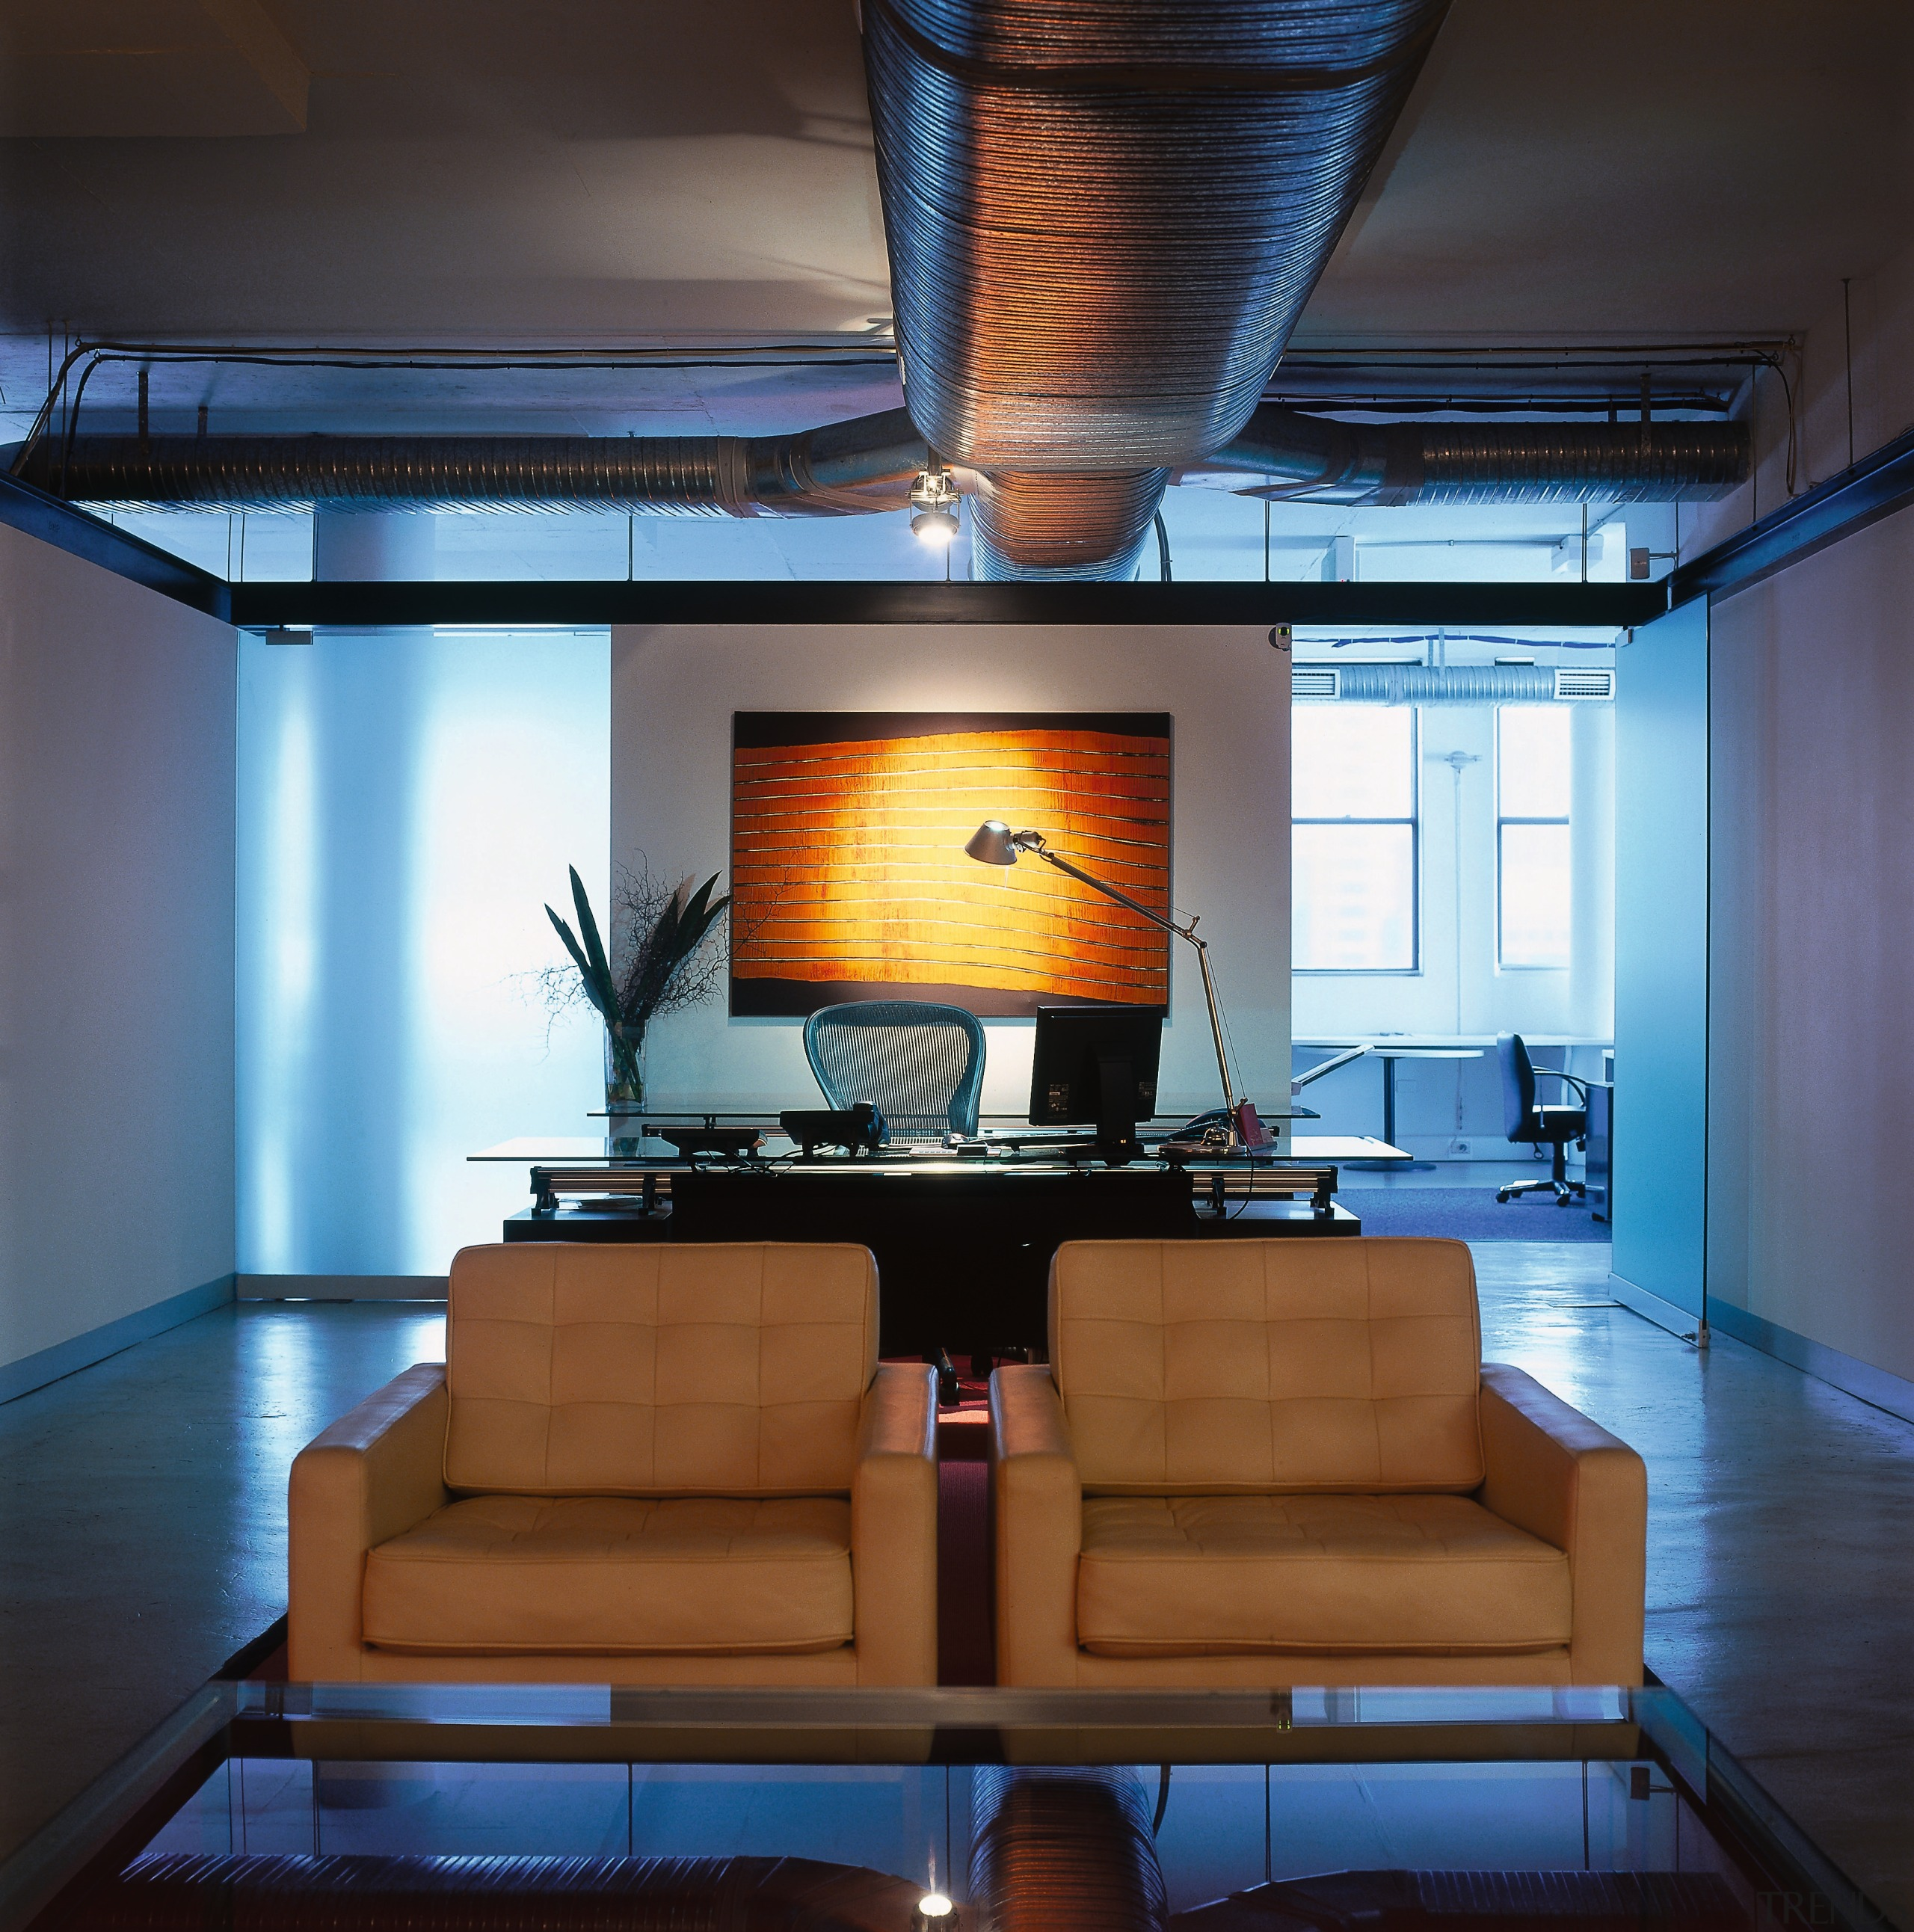 View of an office, two coffee coloured seats, architecture, ceiling, furniture, house, interior design, living room, loft, table, black